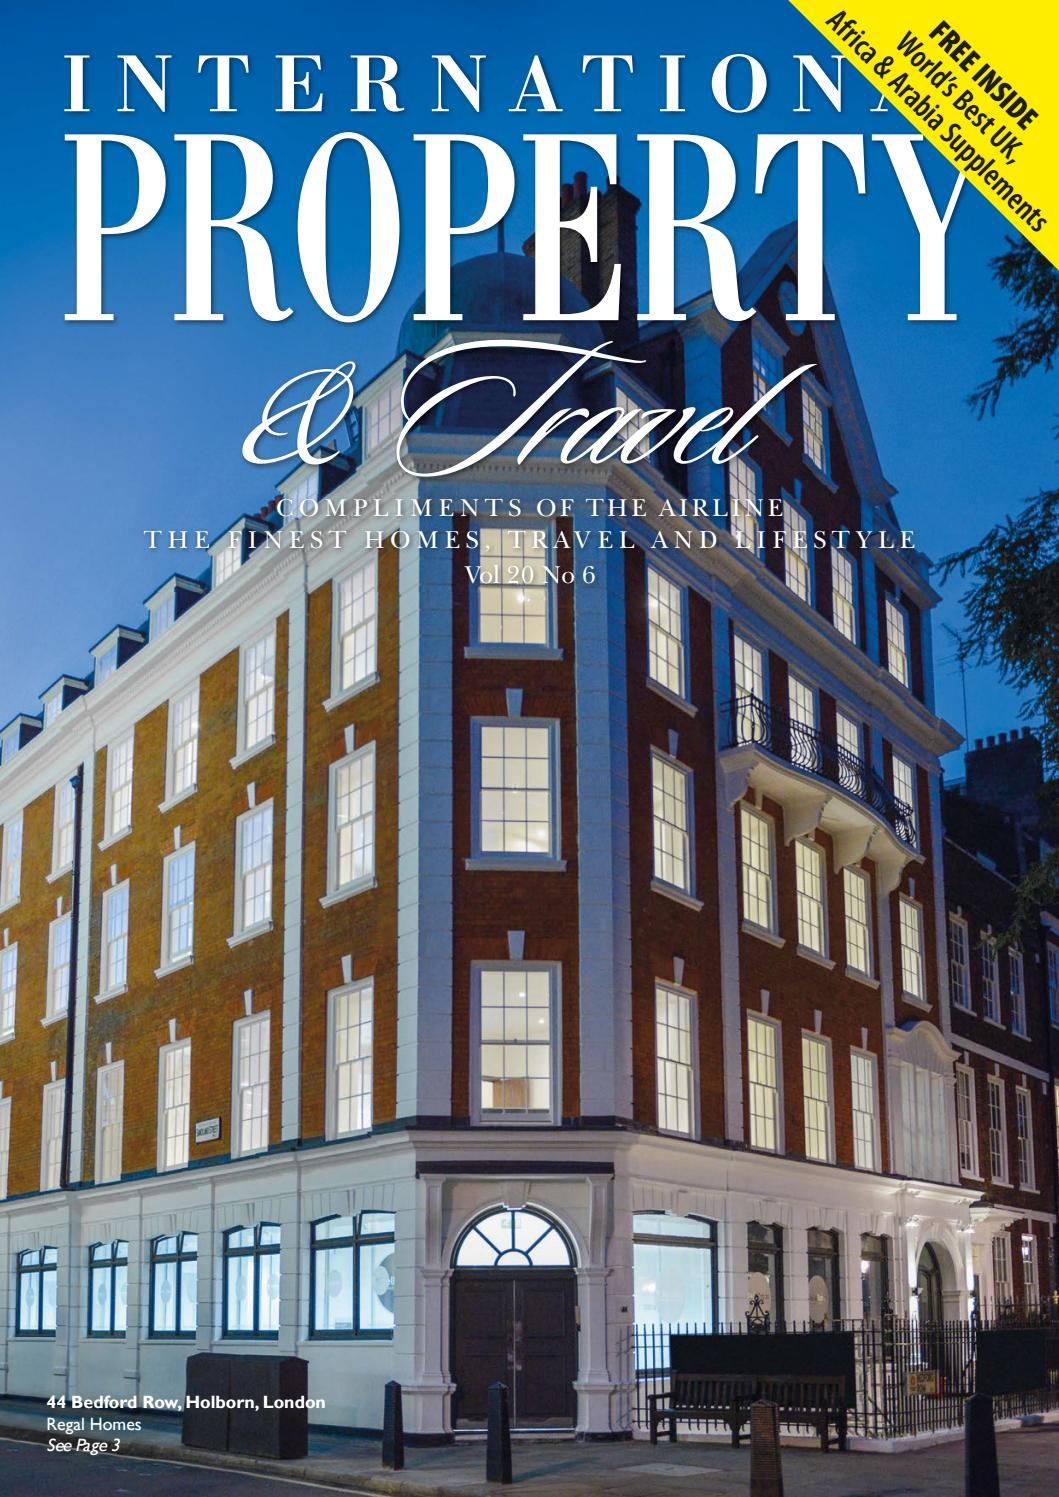 International Property & Travel Volume 20 Number 6 by International